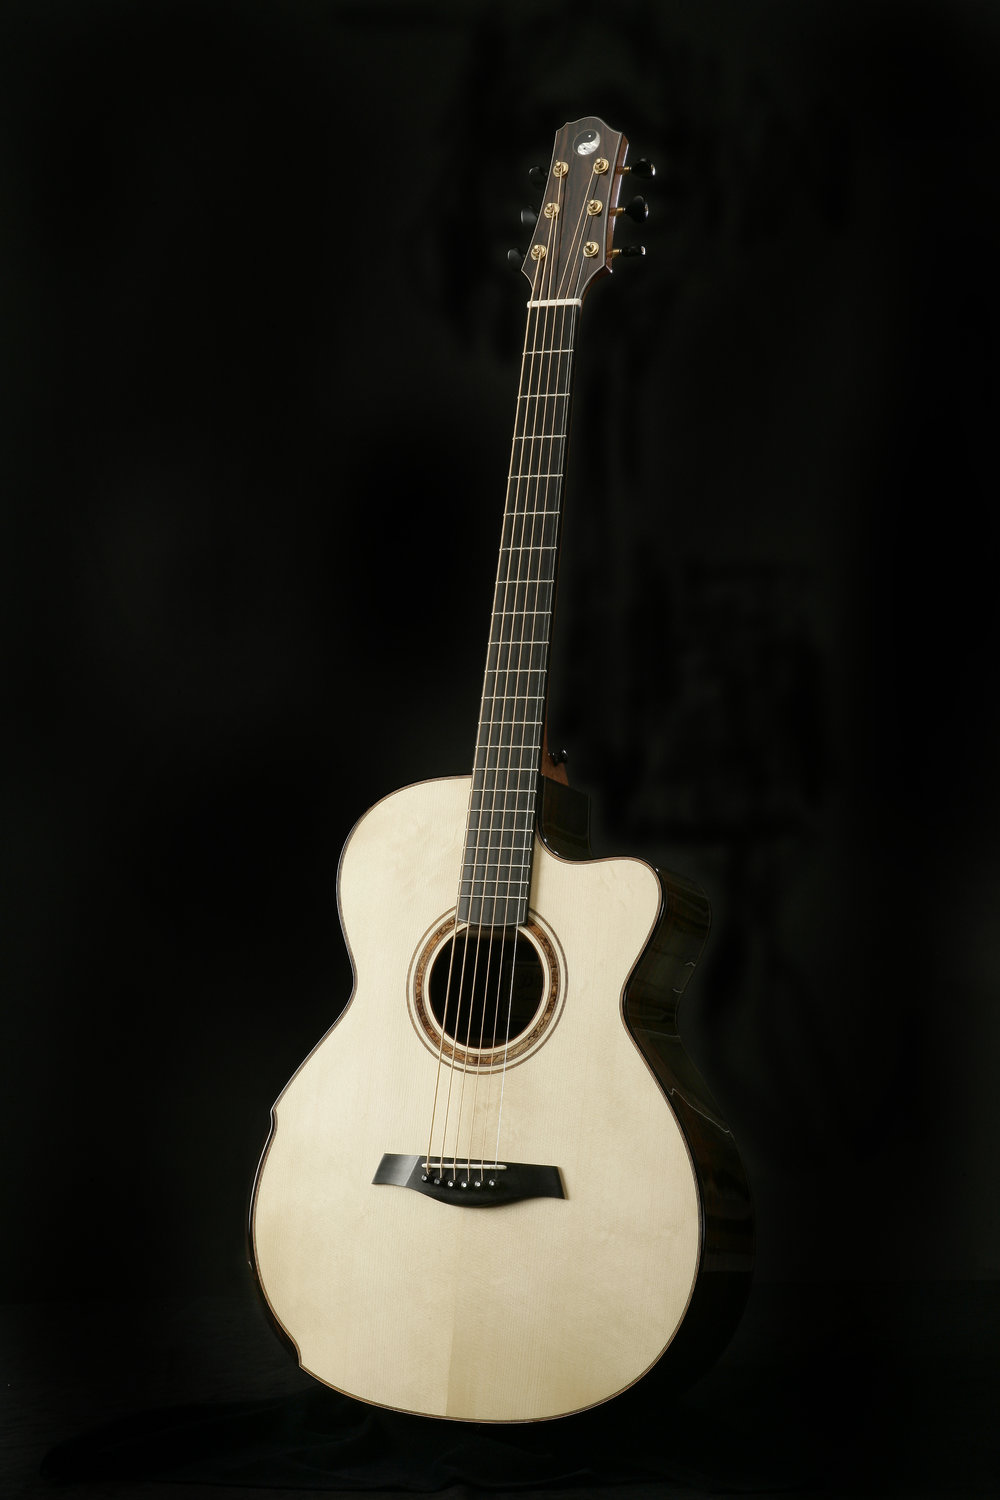 Baritone - With a scale length of 28